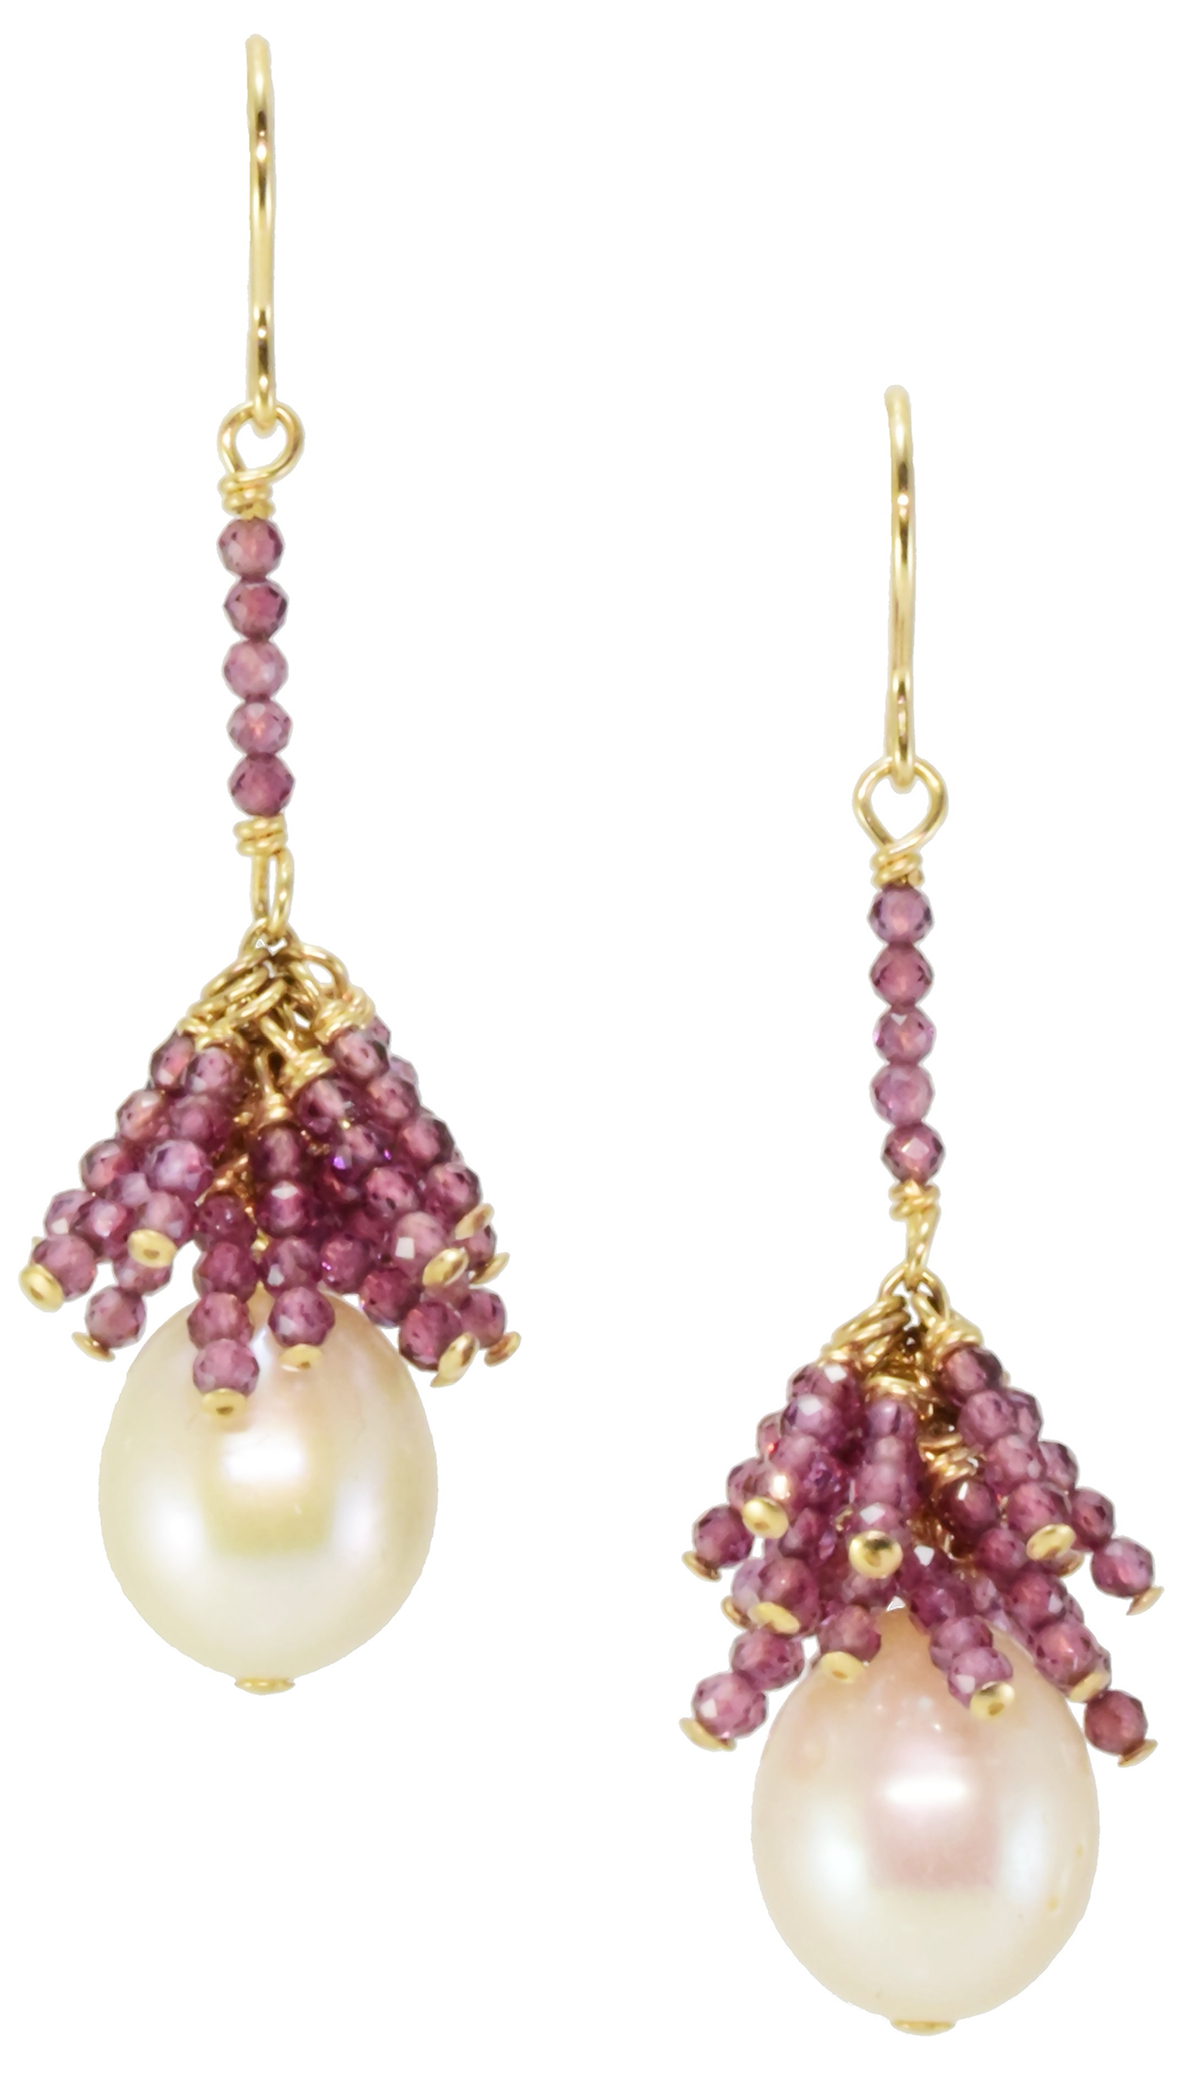 PEARL & RHODOLITE GARNET EARRINGS